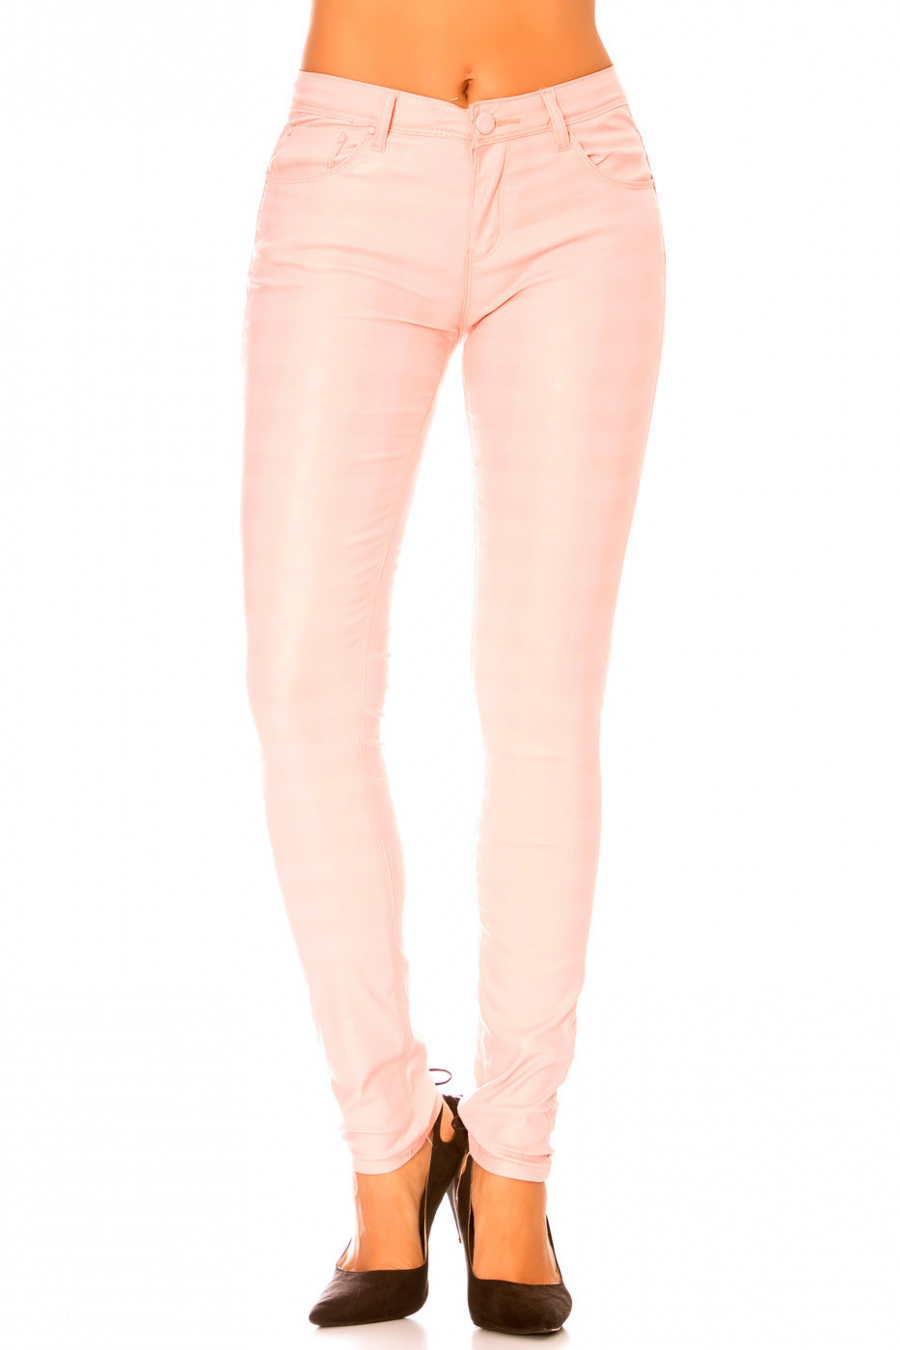 Shiny pink pants with pocket and check pattern. Fashion pants s1799-2